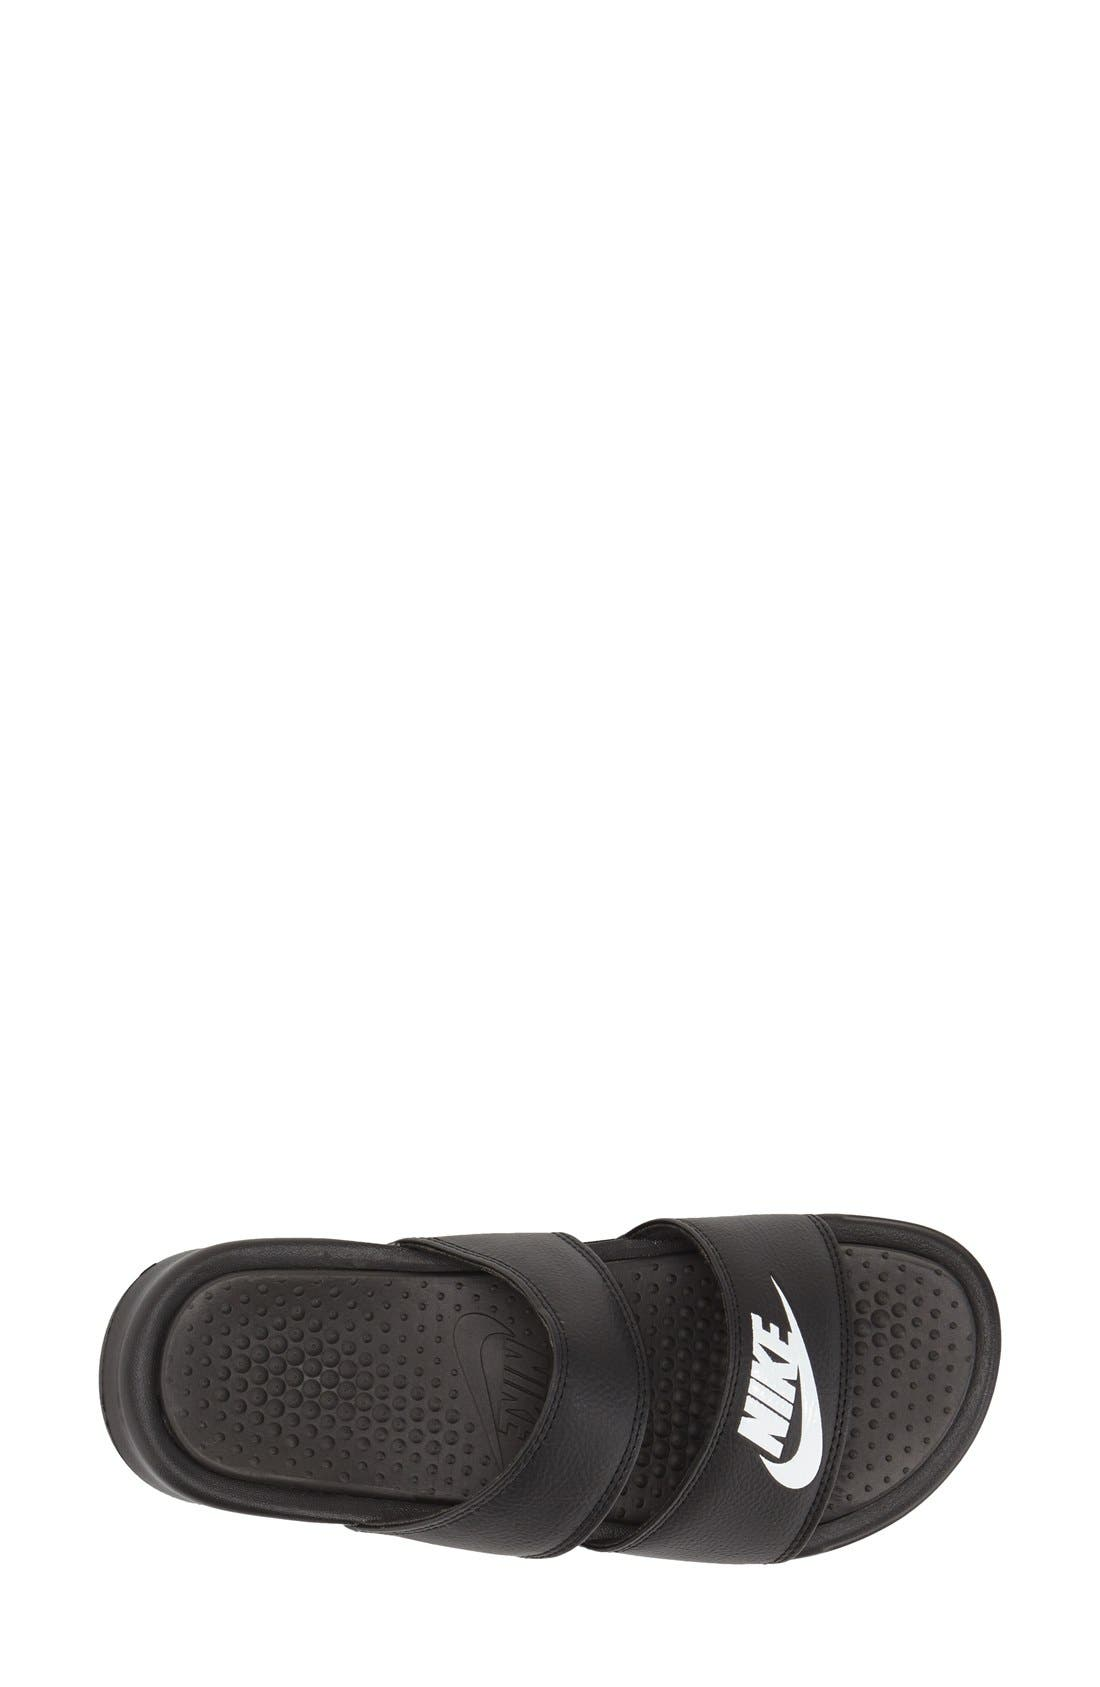 Alternate Image 3  - Nike 'Benassi - Ultra' Slide Sandal (Women)